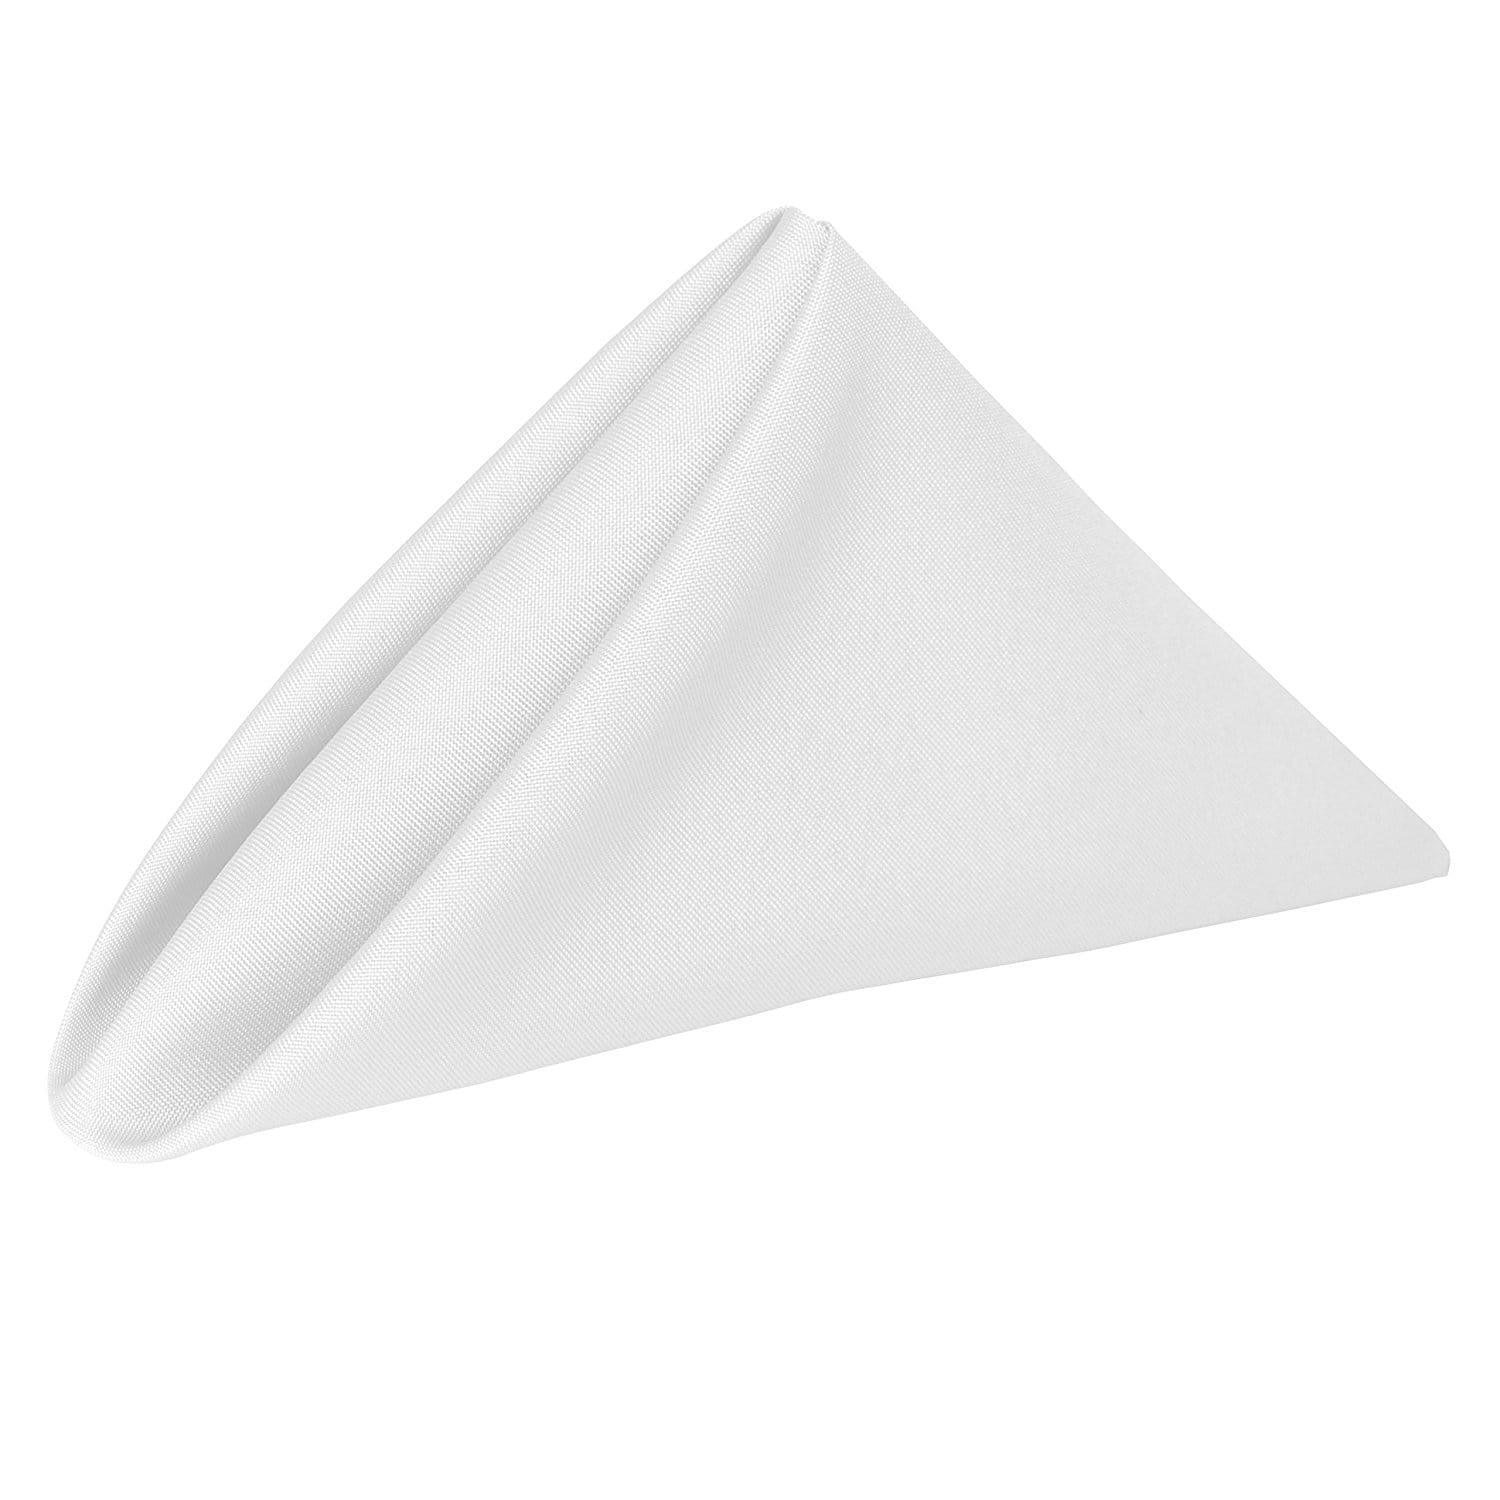 White 20 in. Basic Polyester Cloth Napkins